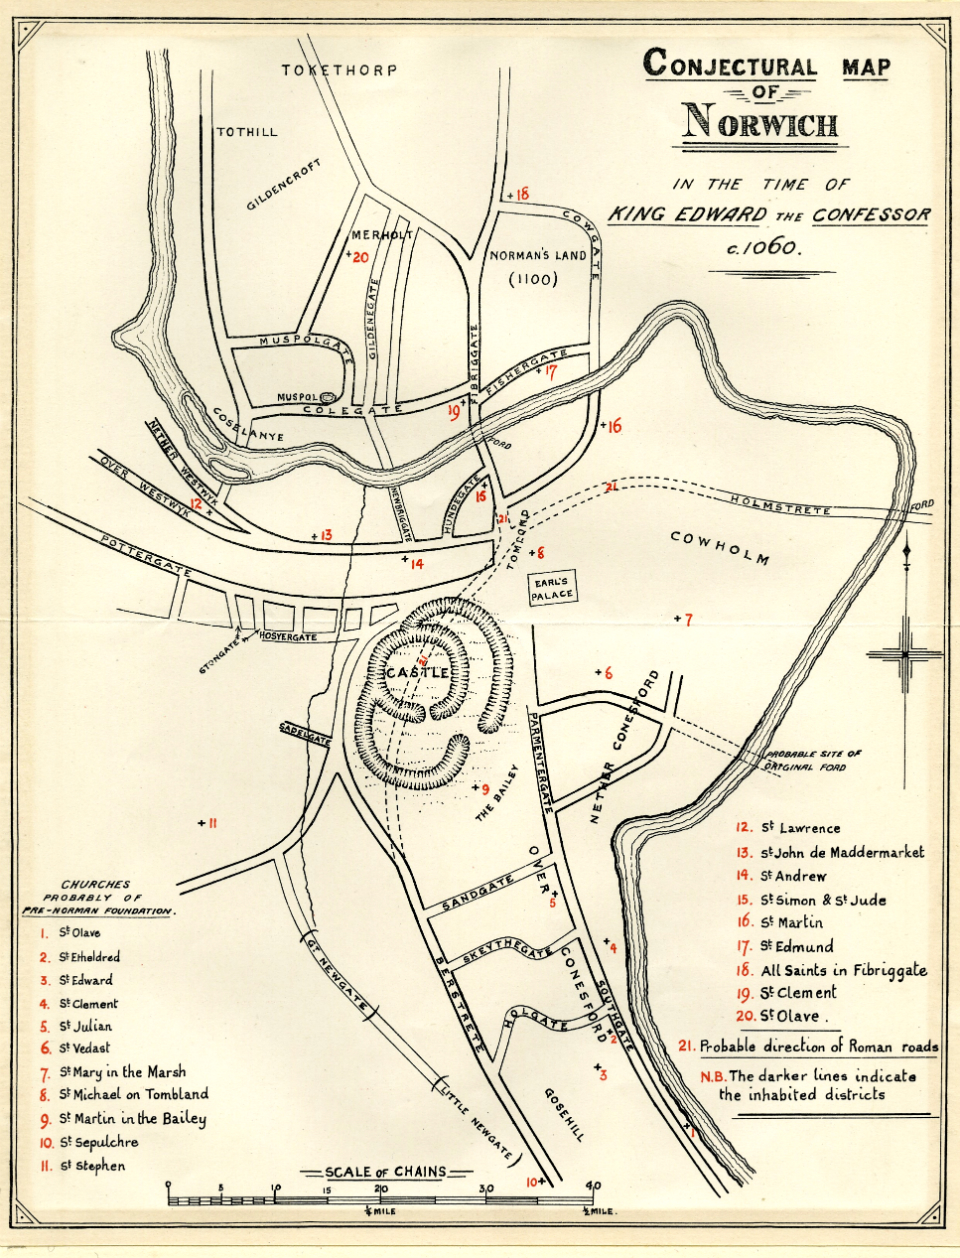 1895 Conjectural Map of Norwich in the Time of King Edward the Confessor c.jpg